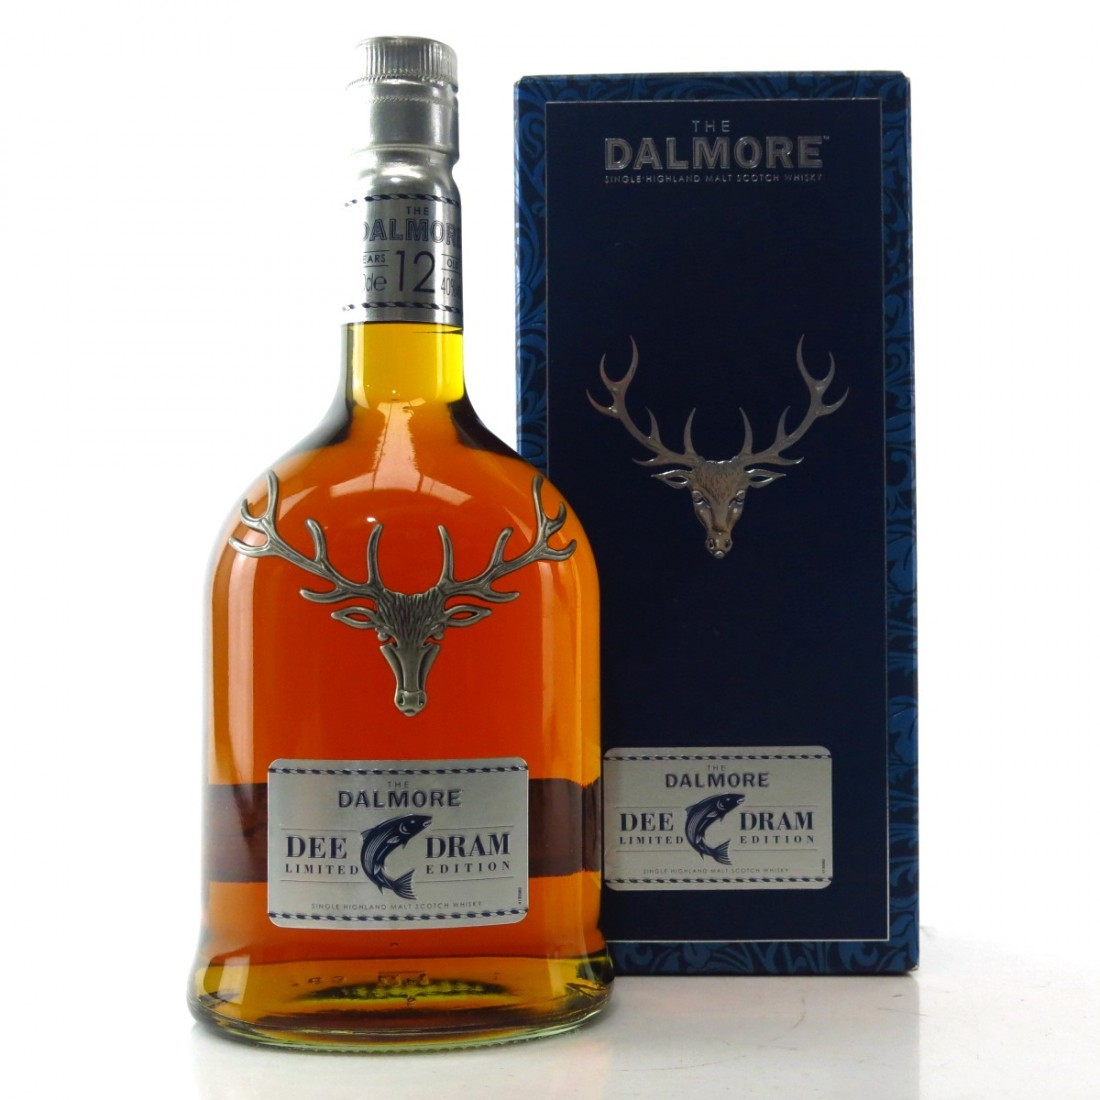 Dalmore 12 Year Old Dee Dram / First Edition